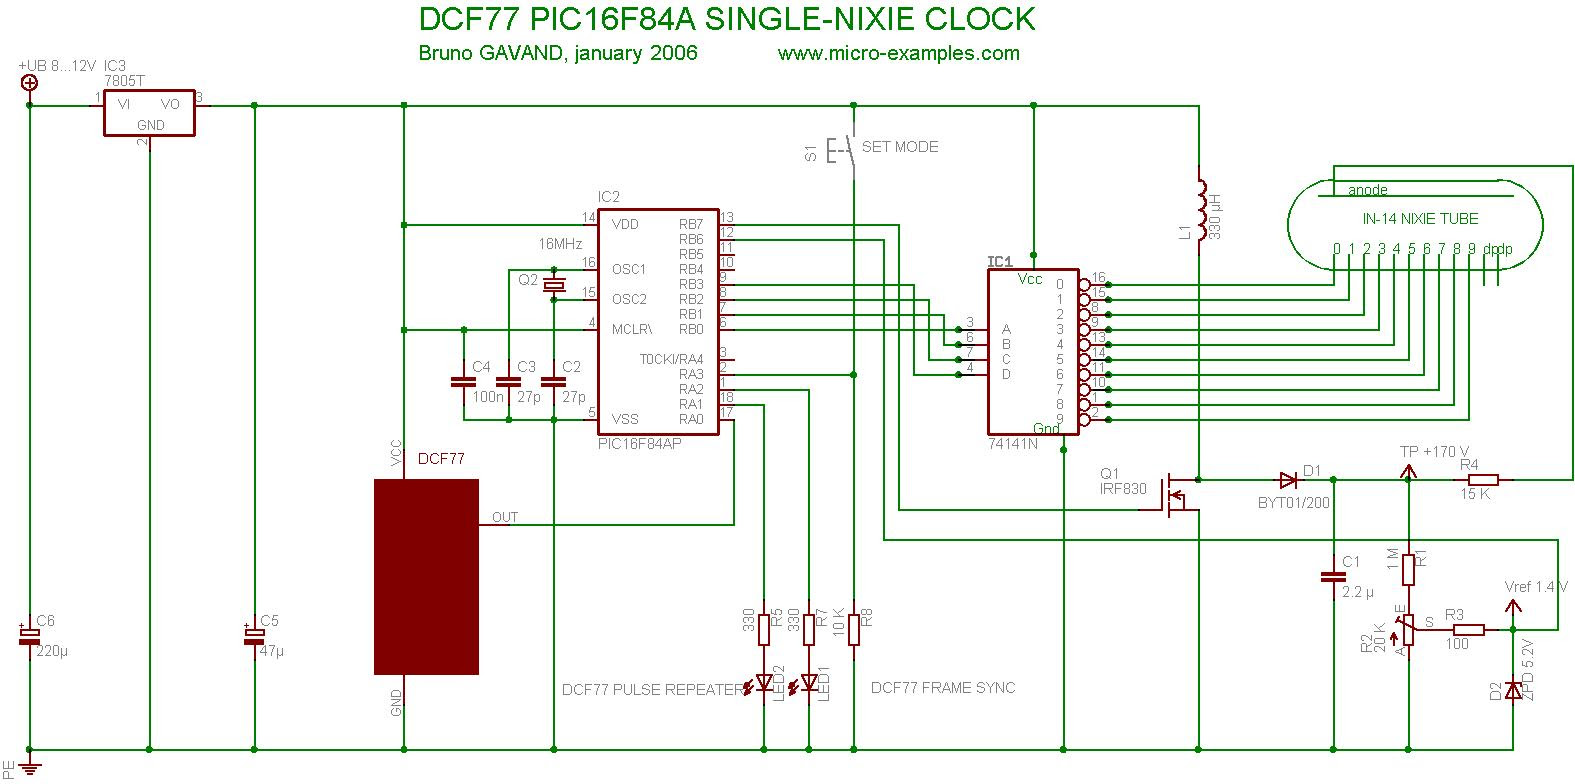 PIC16F84A DCF77 Nixie Clock Circuit Diagram